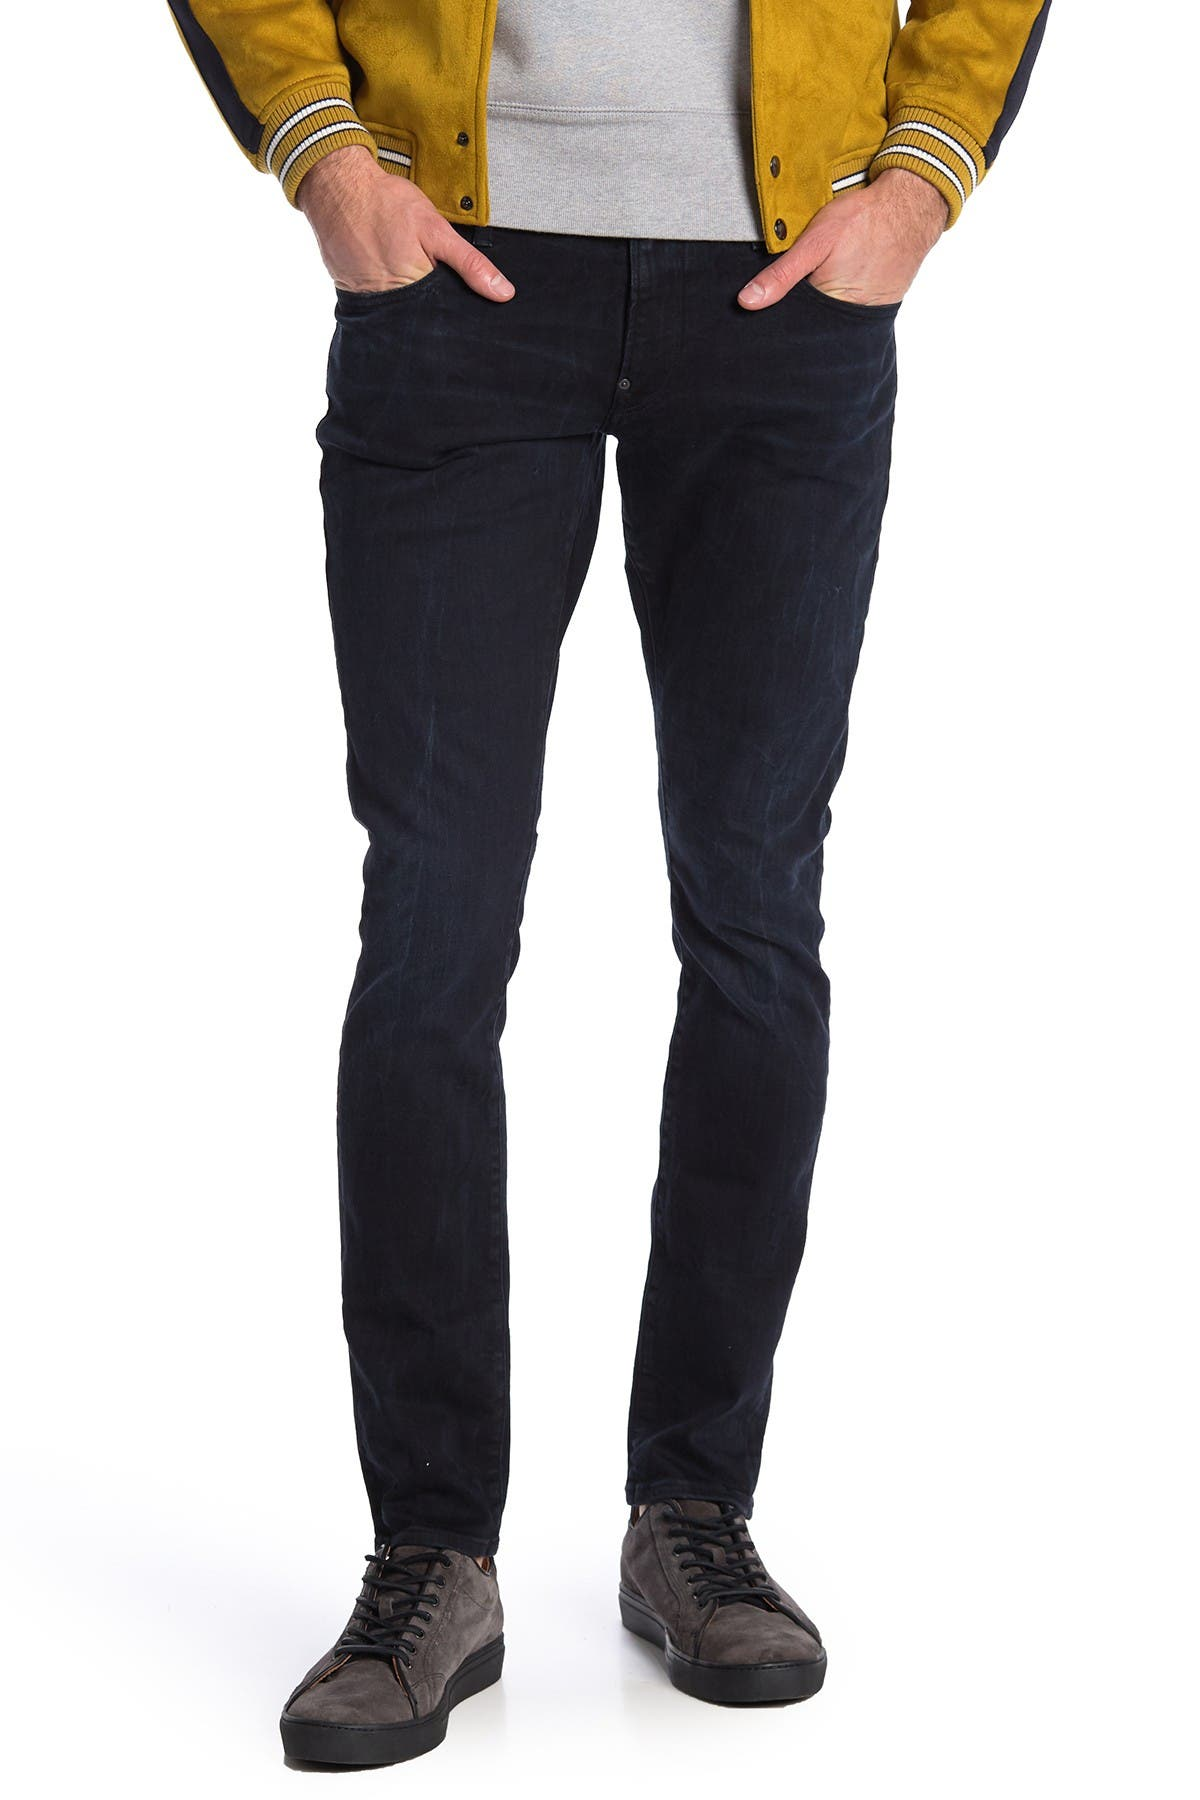 Image of G-STAR RAW Revend Skinny Jeans